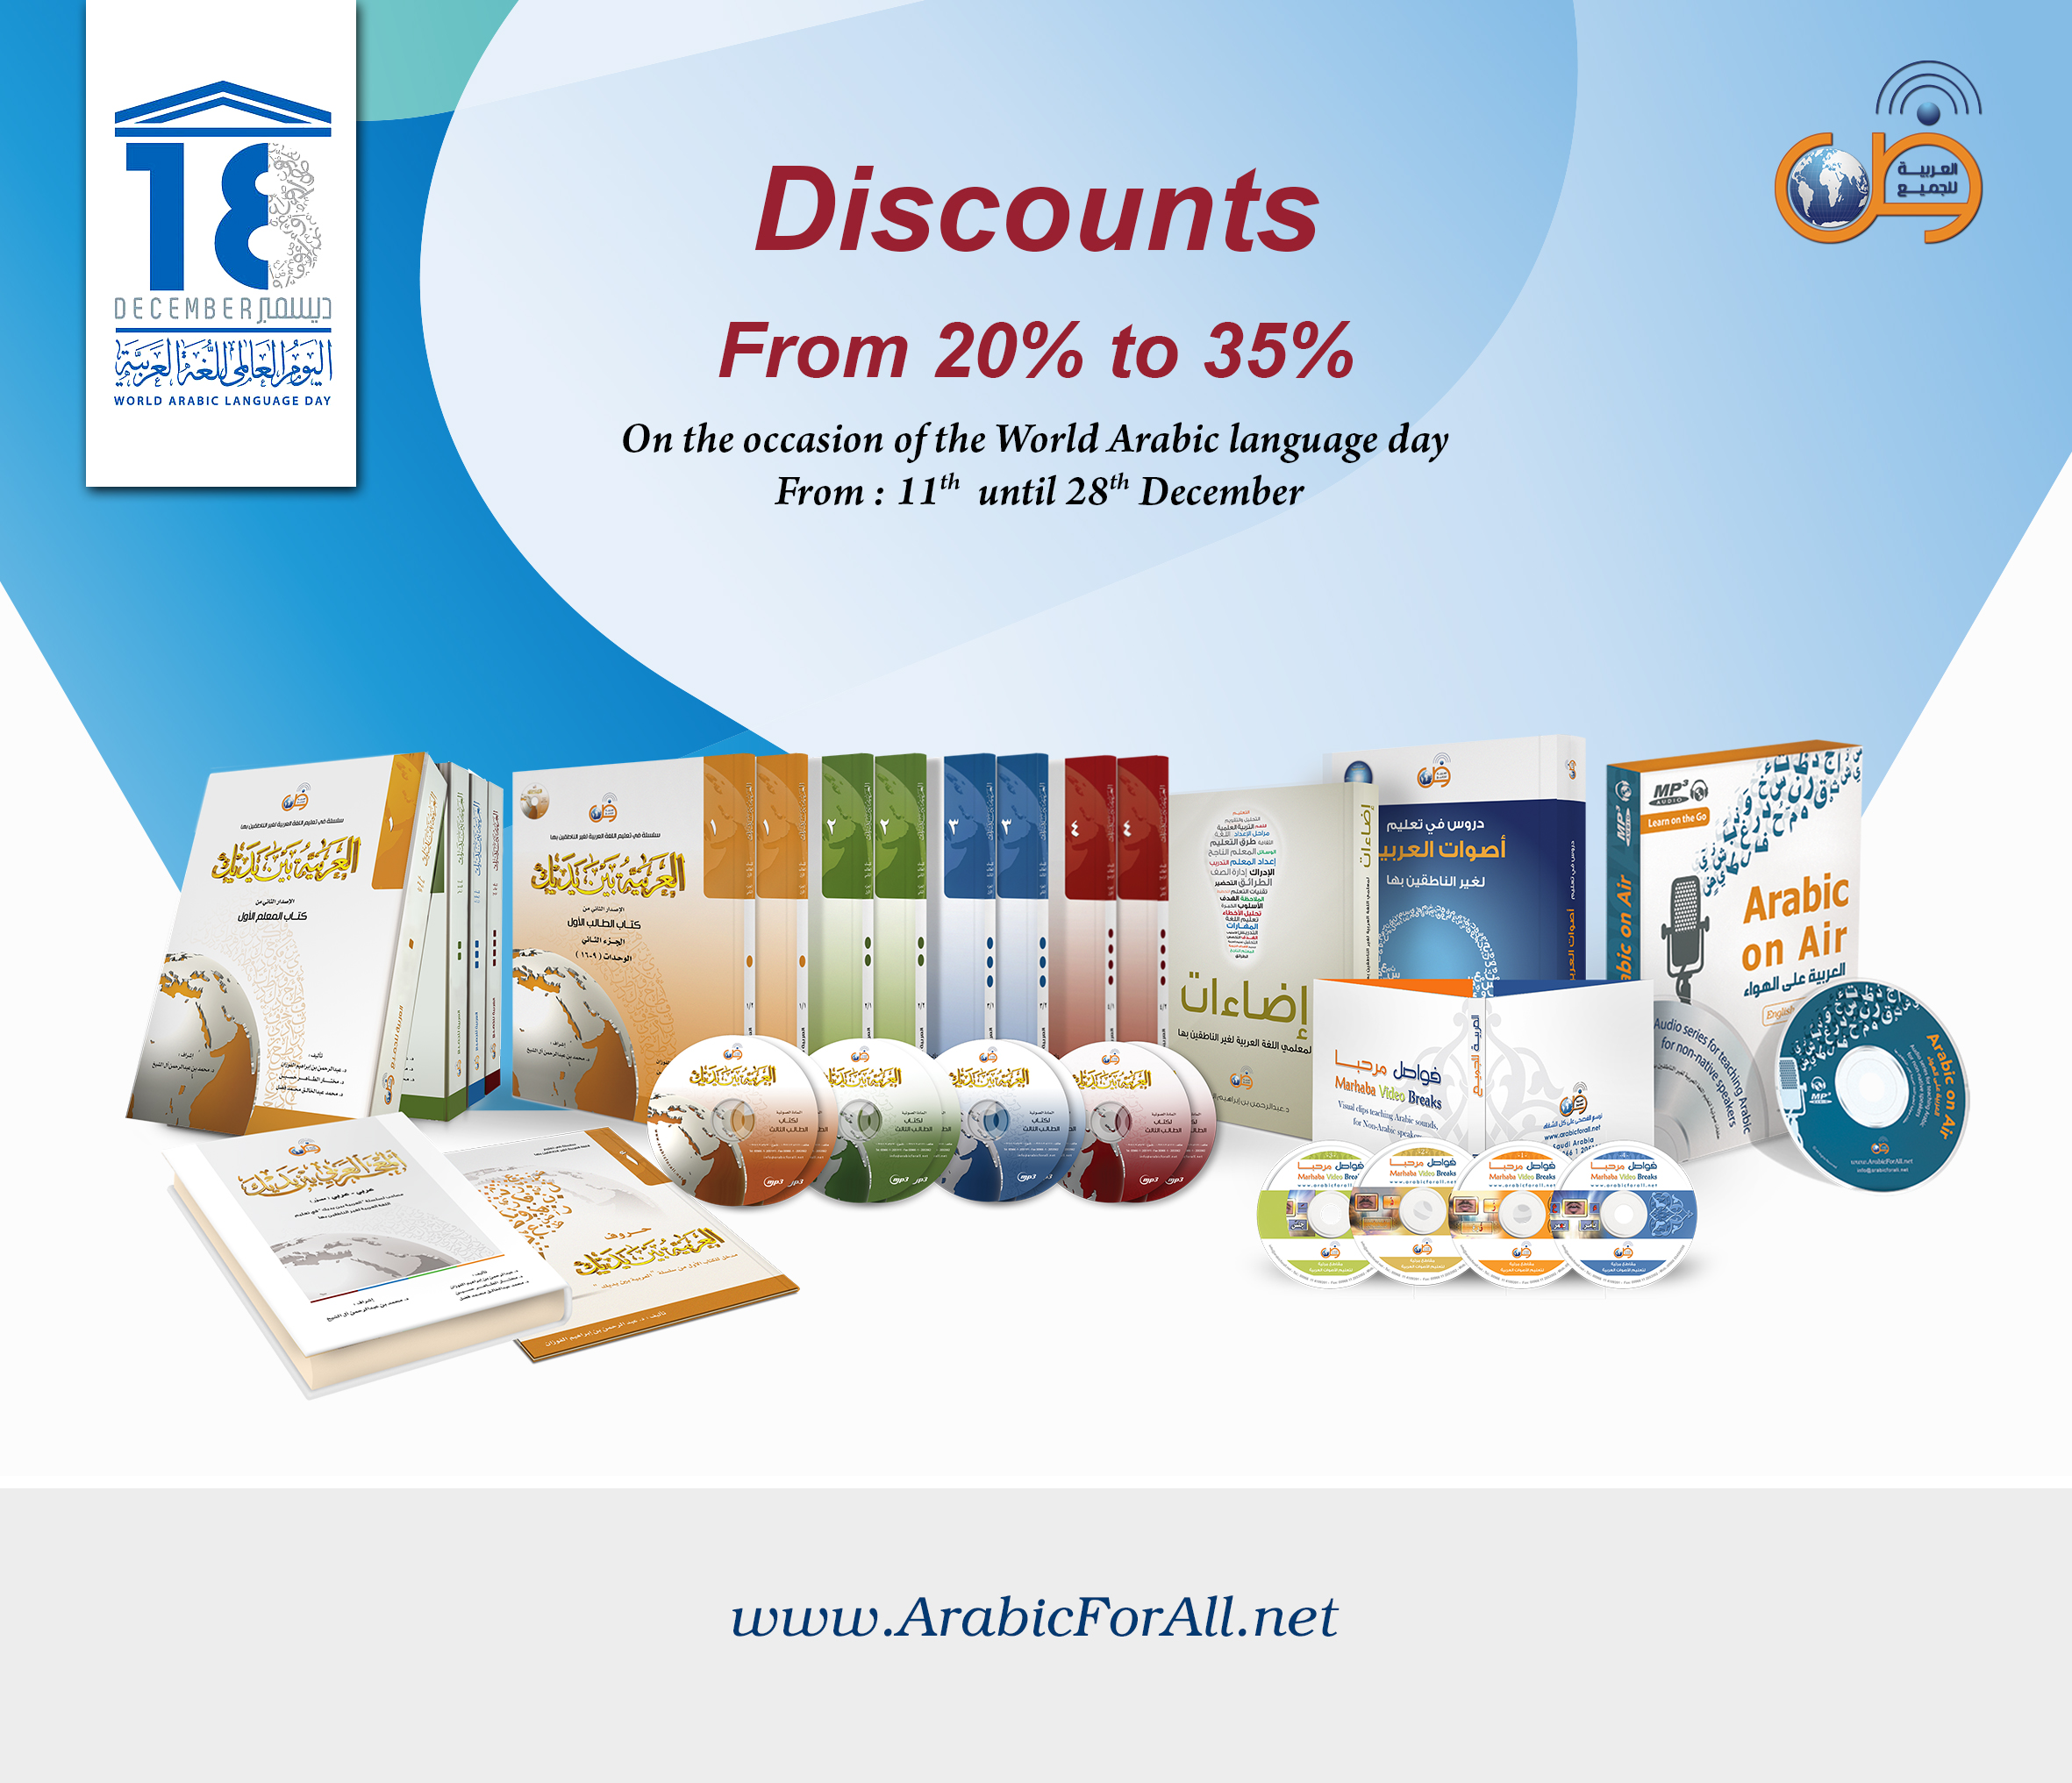 ArabicForAll new discounts in the occasion of Arabic language day